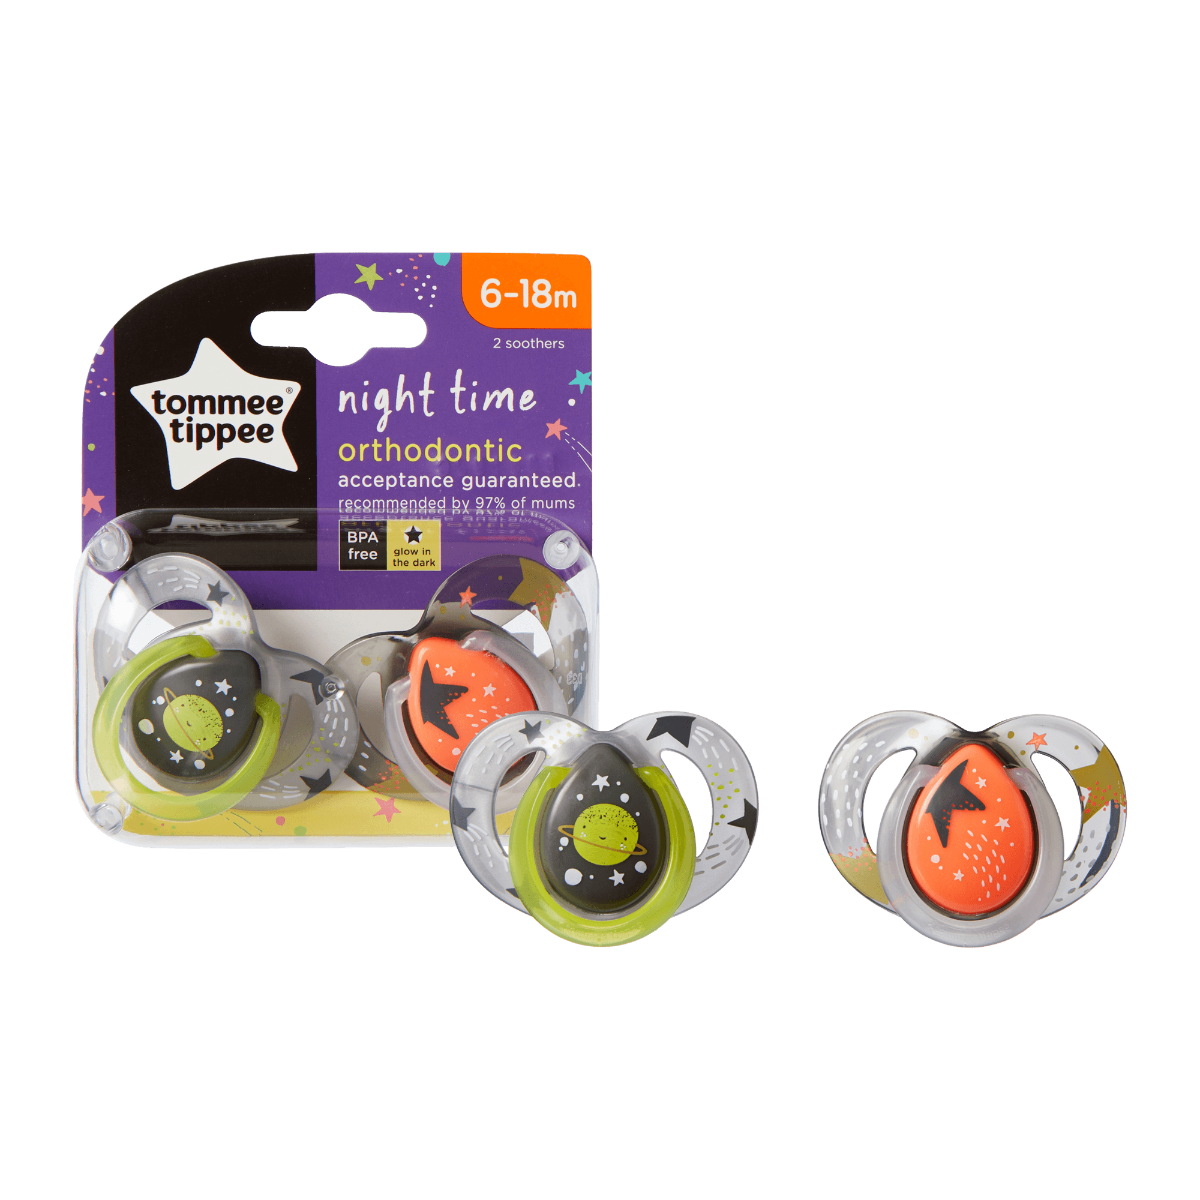 green-and-orange-night-soothers-next-to-packaging